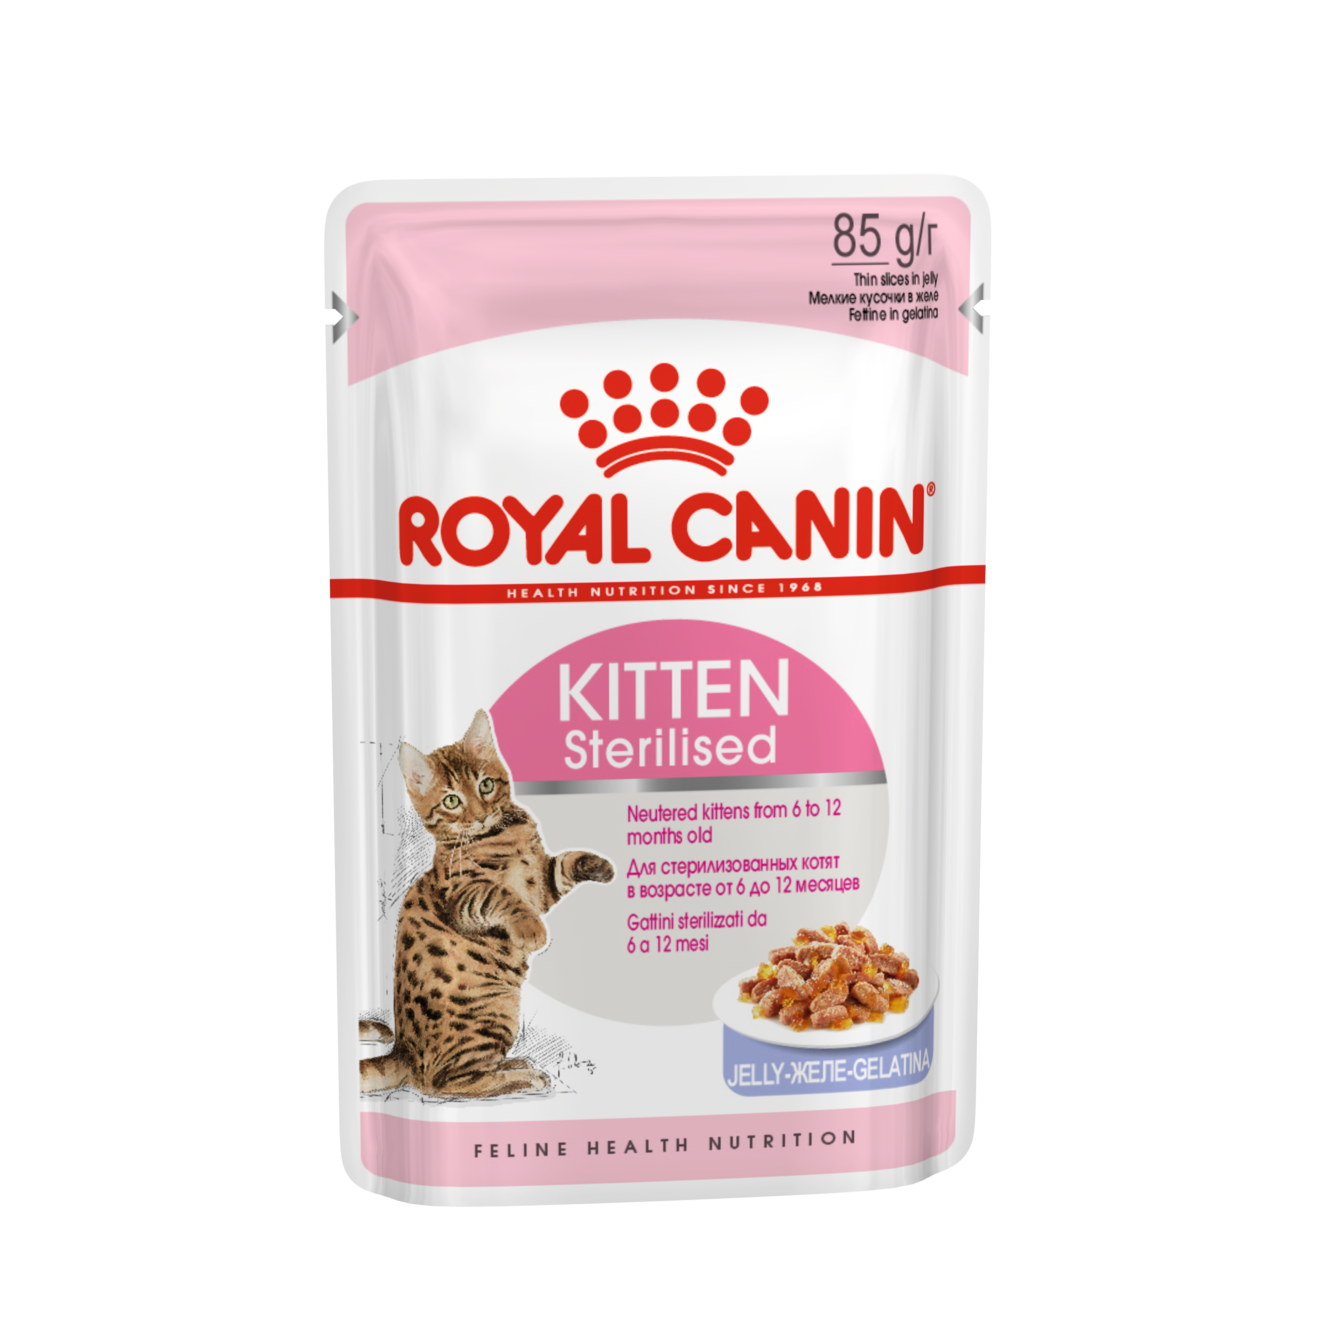 Повседневный корм Royal Canin (Роял Канин) для кошки